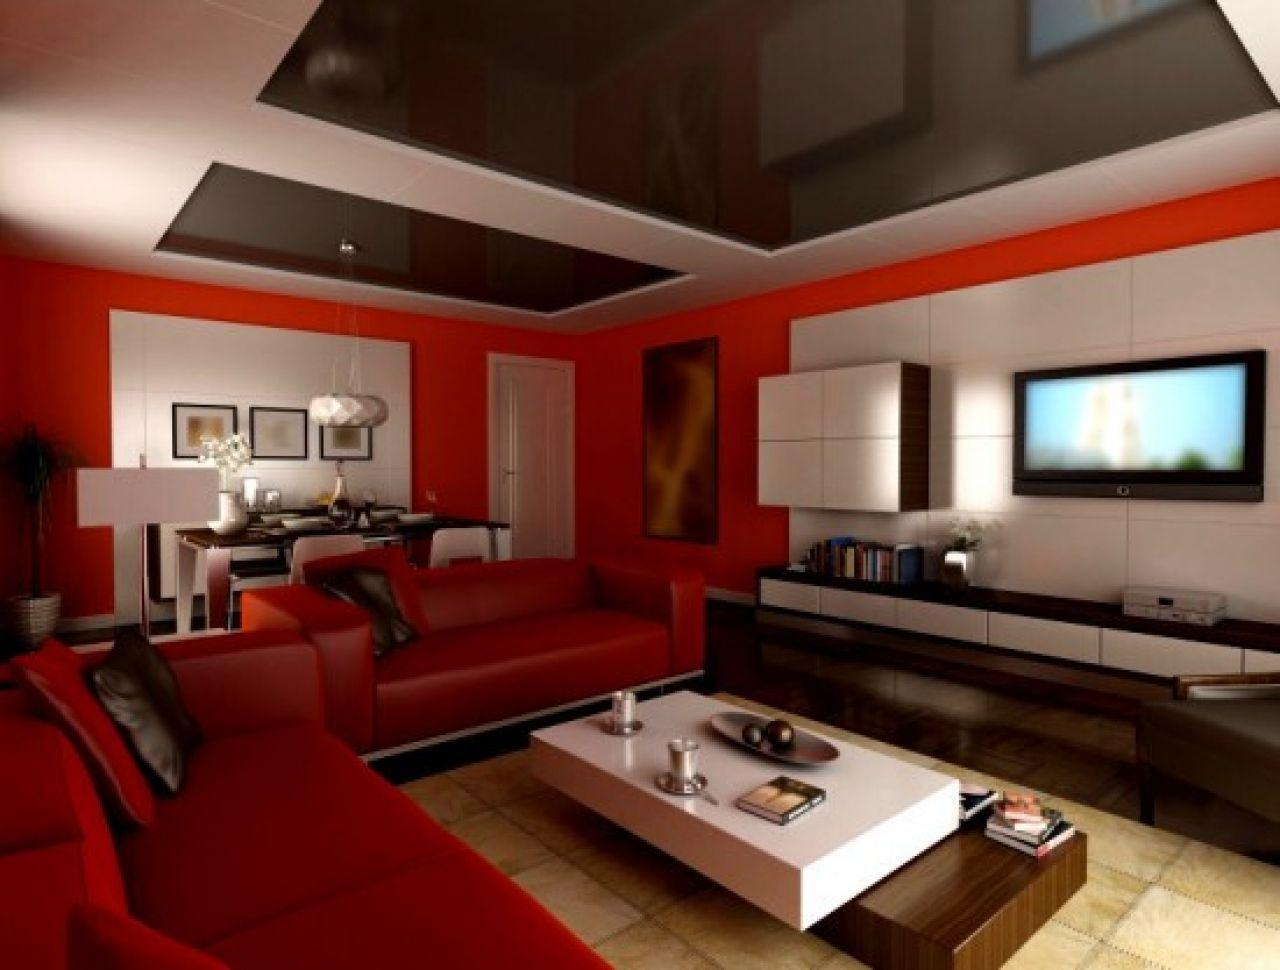 Paint Colors Astounding Small Modern Red Living Room Ideas With Mirrored Gl Ceiling L Shape Leather Sectional Sofa Stylish Coffee Table